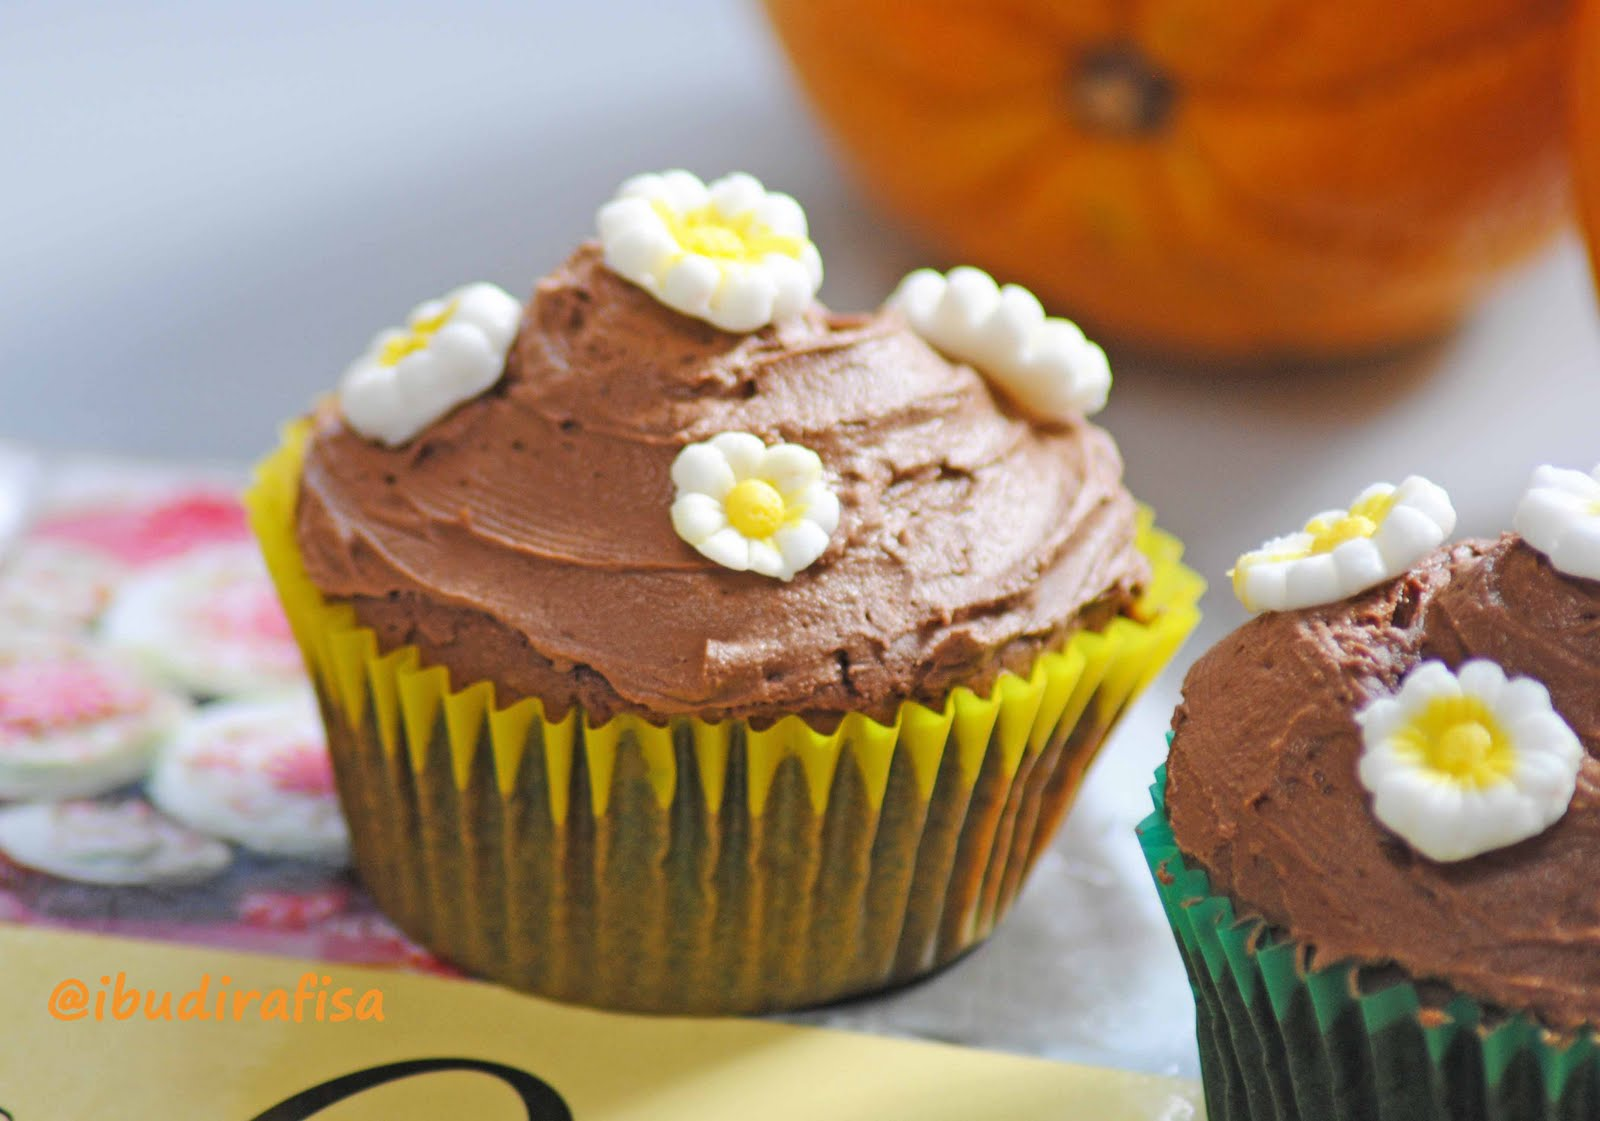 Ibudirafisa: Chocolate Orange Cupcakes